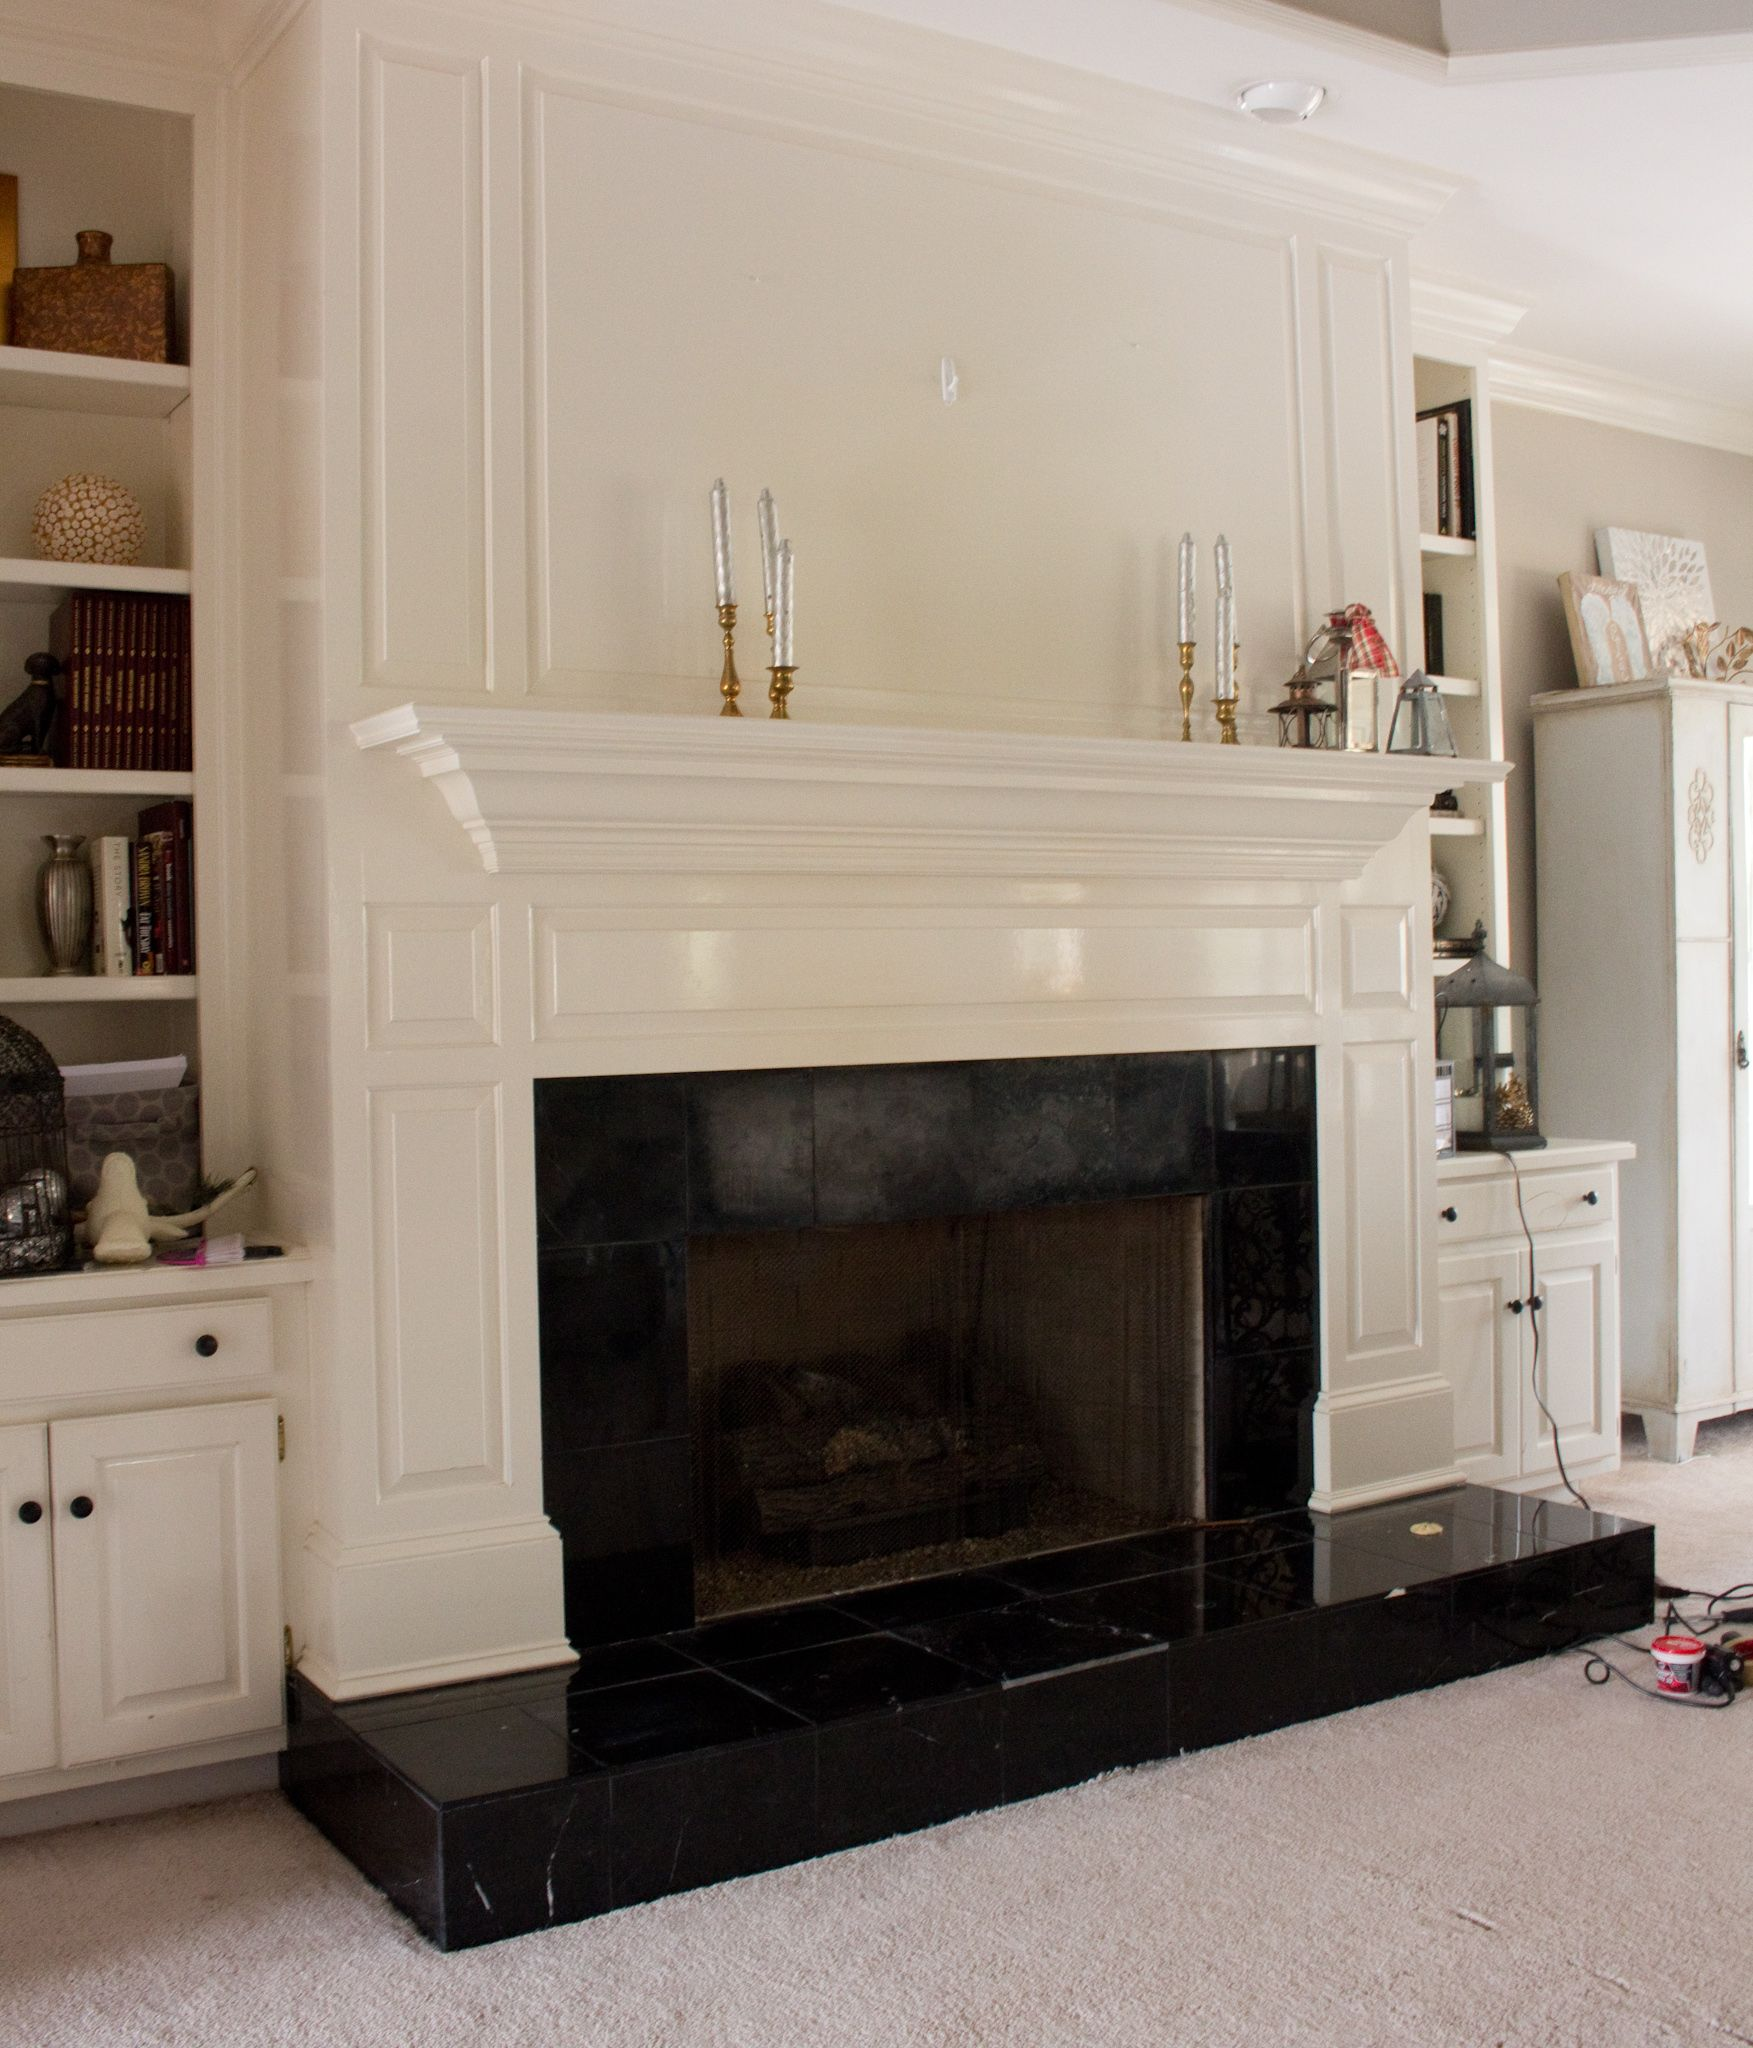 Faux Marble Fireplace Savvy Apron Fireplace Surrounds Stone Fireplace Mantles Stacked Stone Fireplaces